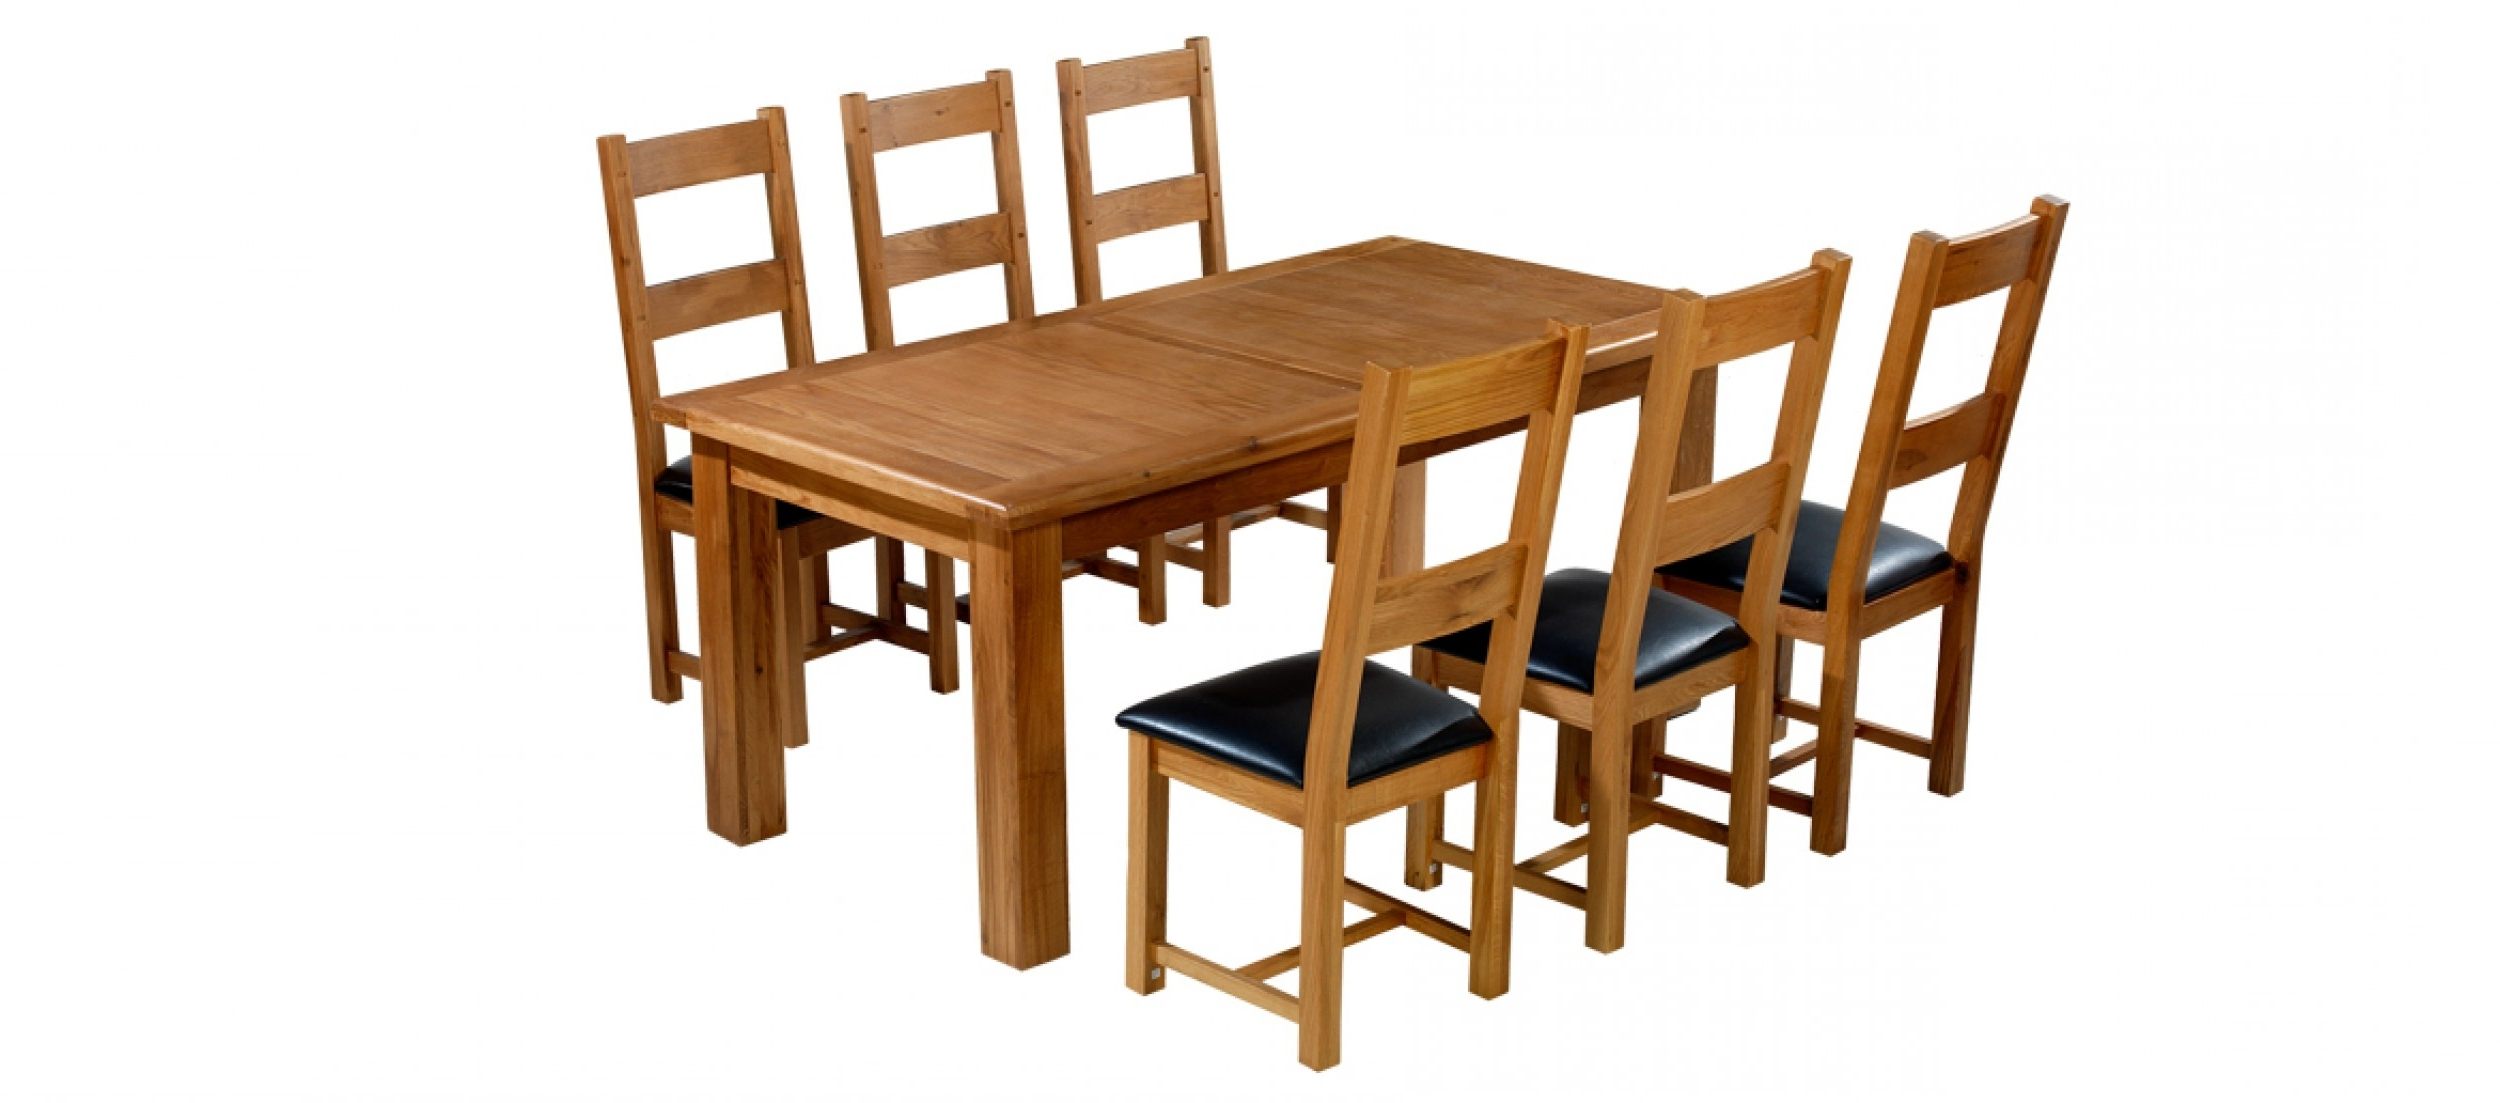 Quercus Throughout Extending Dining Tables And 6 Chairs (View 7 of 25)